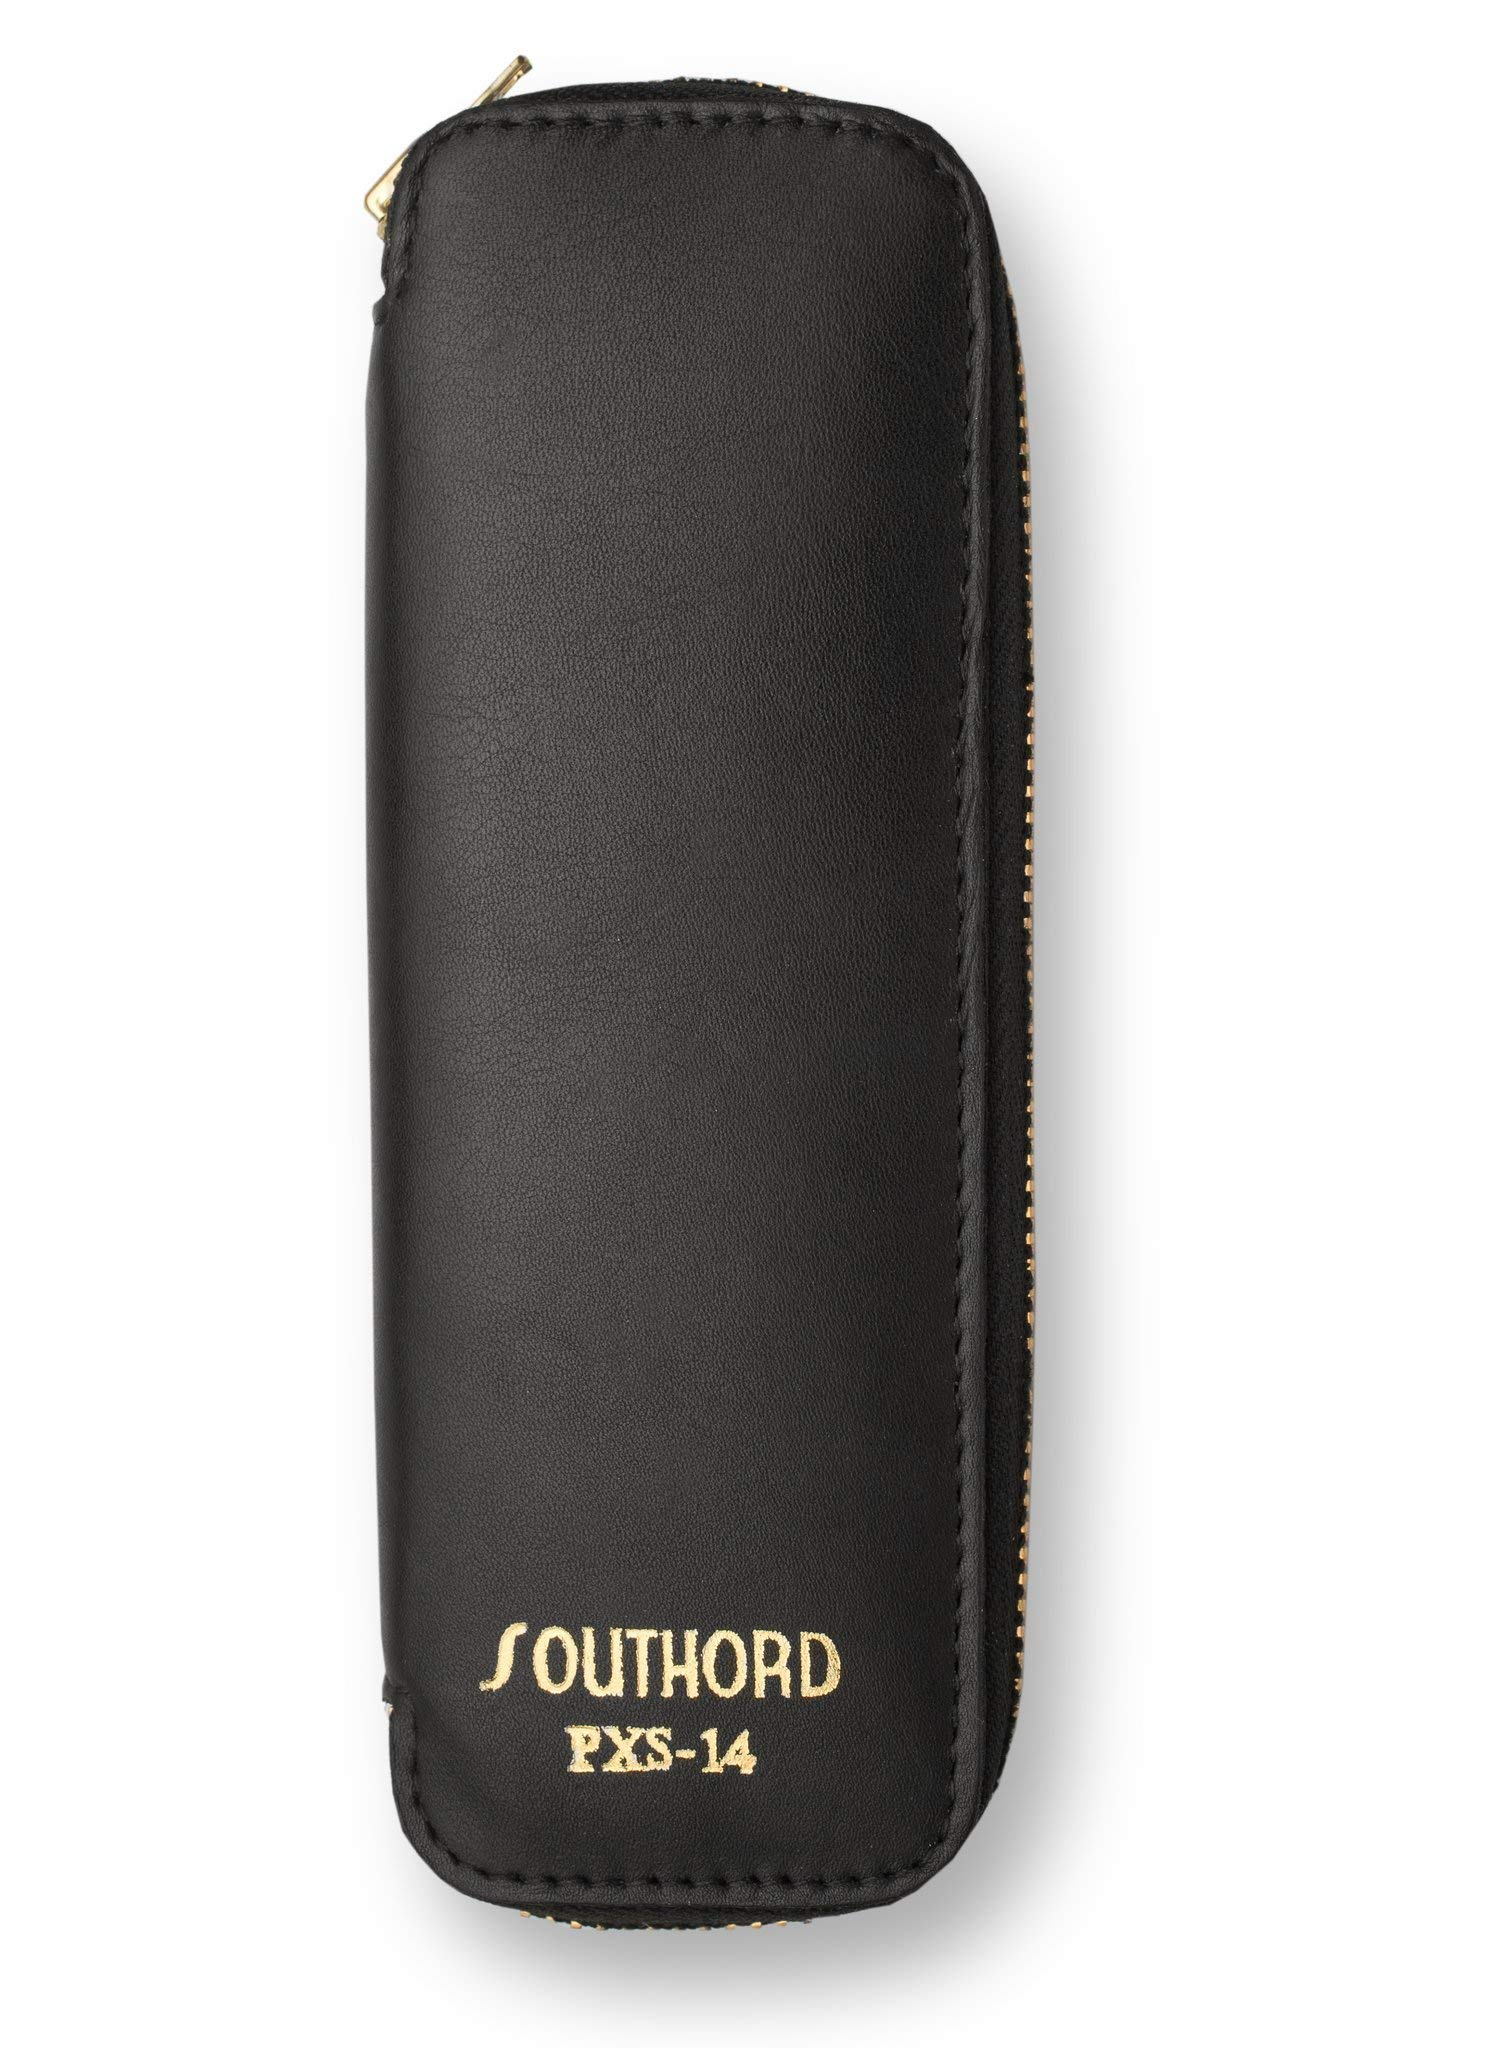 Southord PXS-14 Lock Set Leather Tool Case